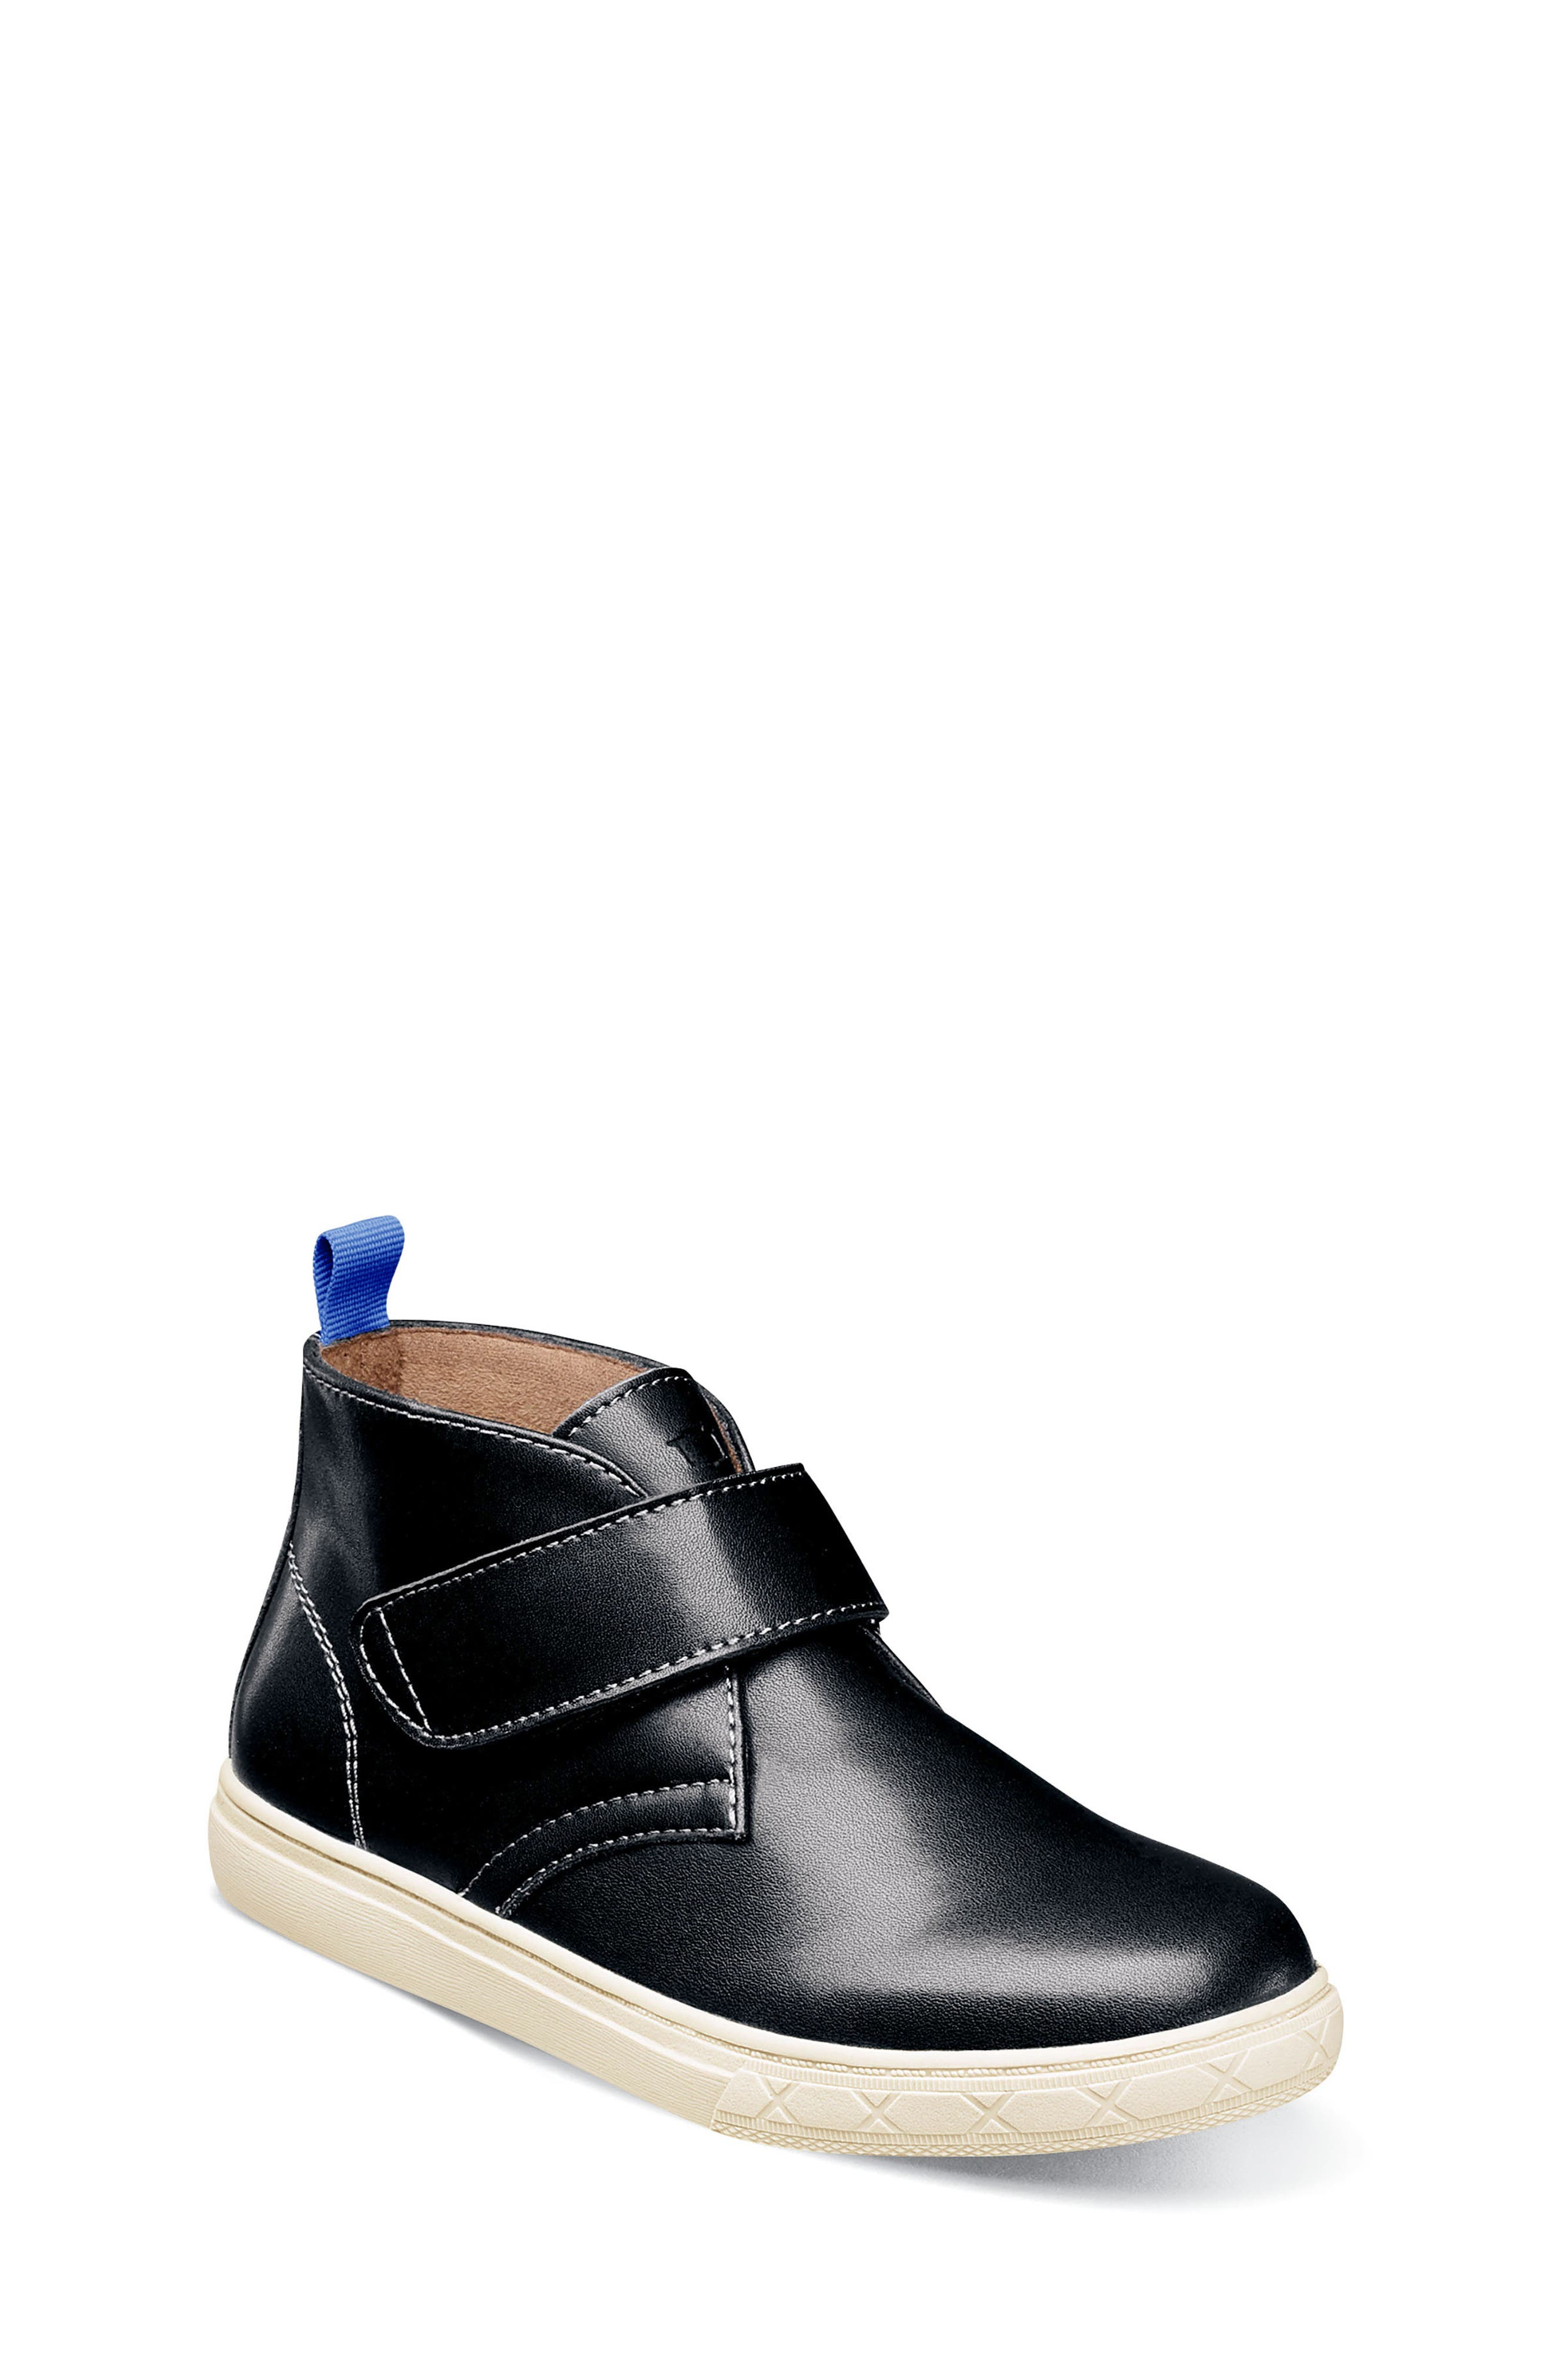 Curb Chukka Boot,                         Main,                         color, BLACK LEATHER